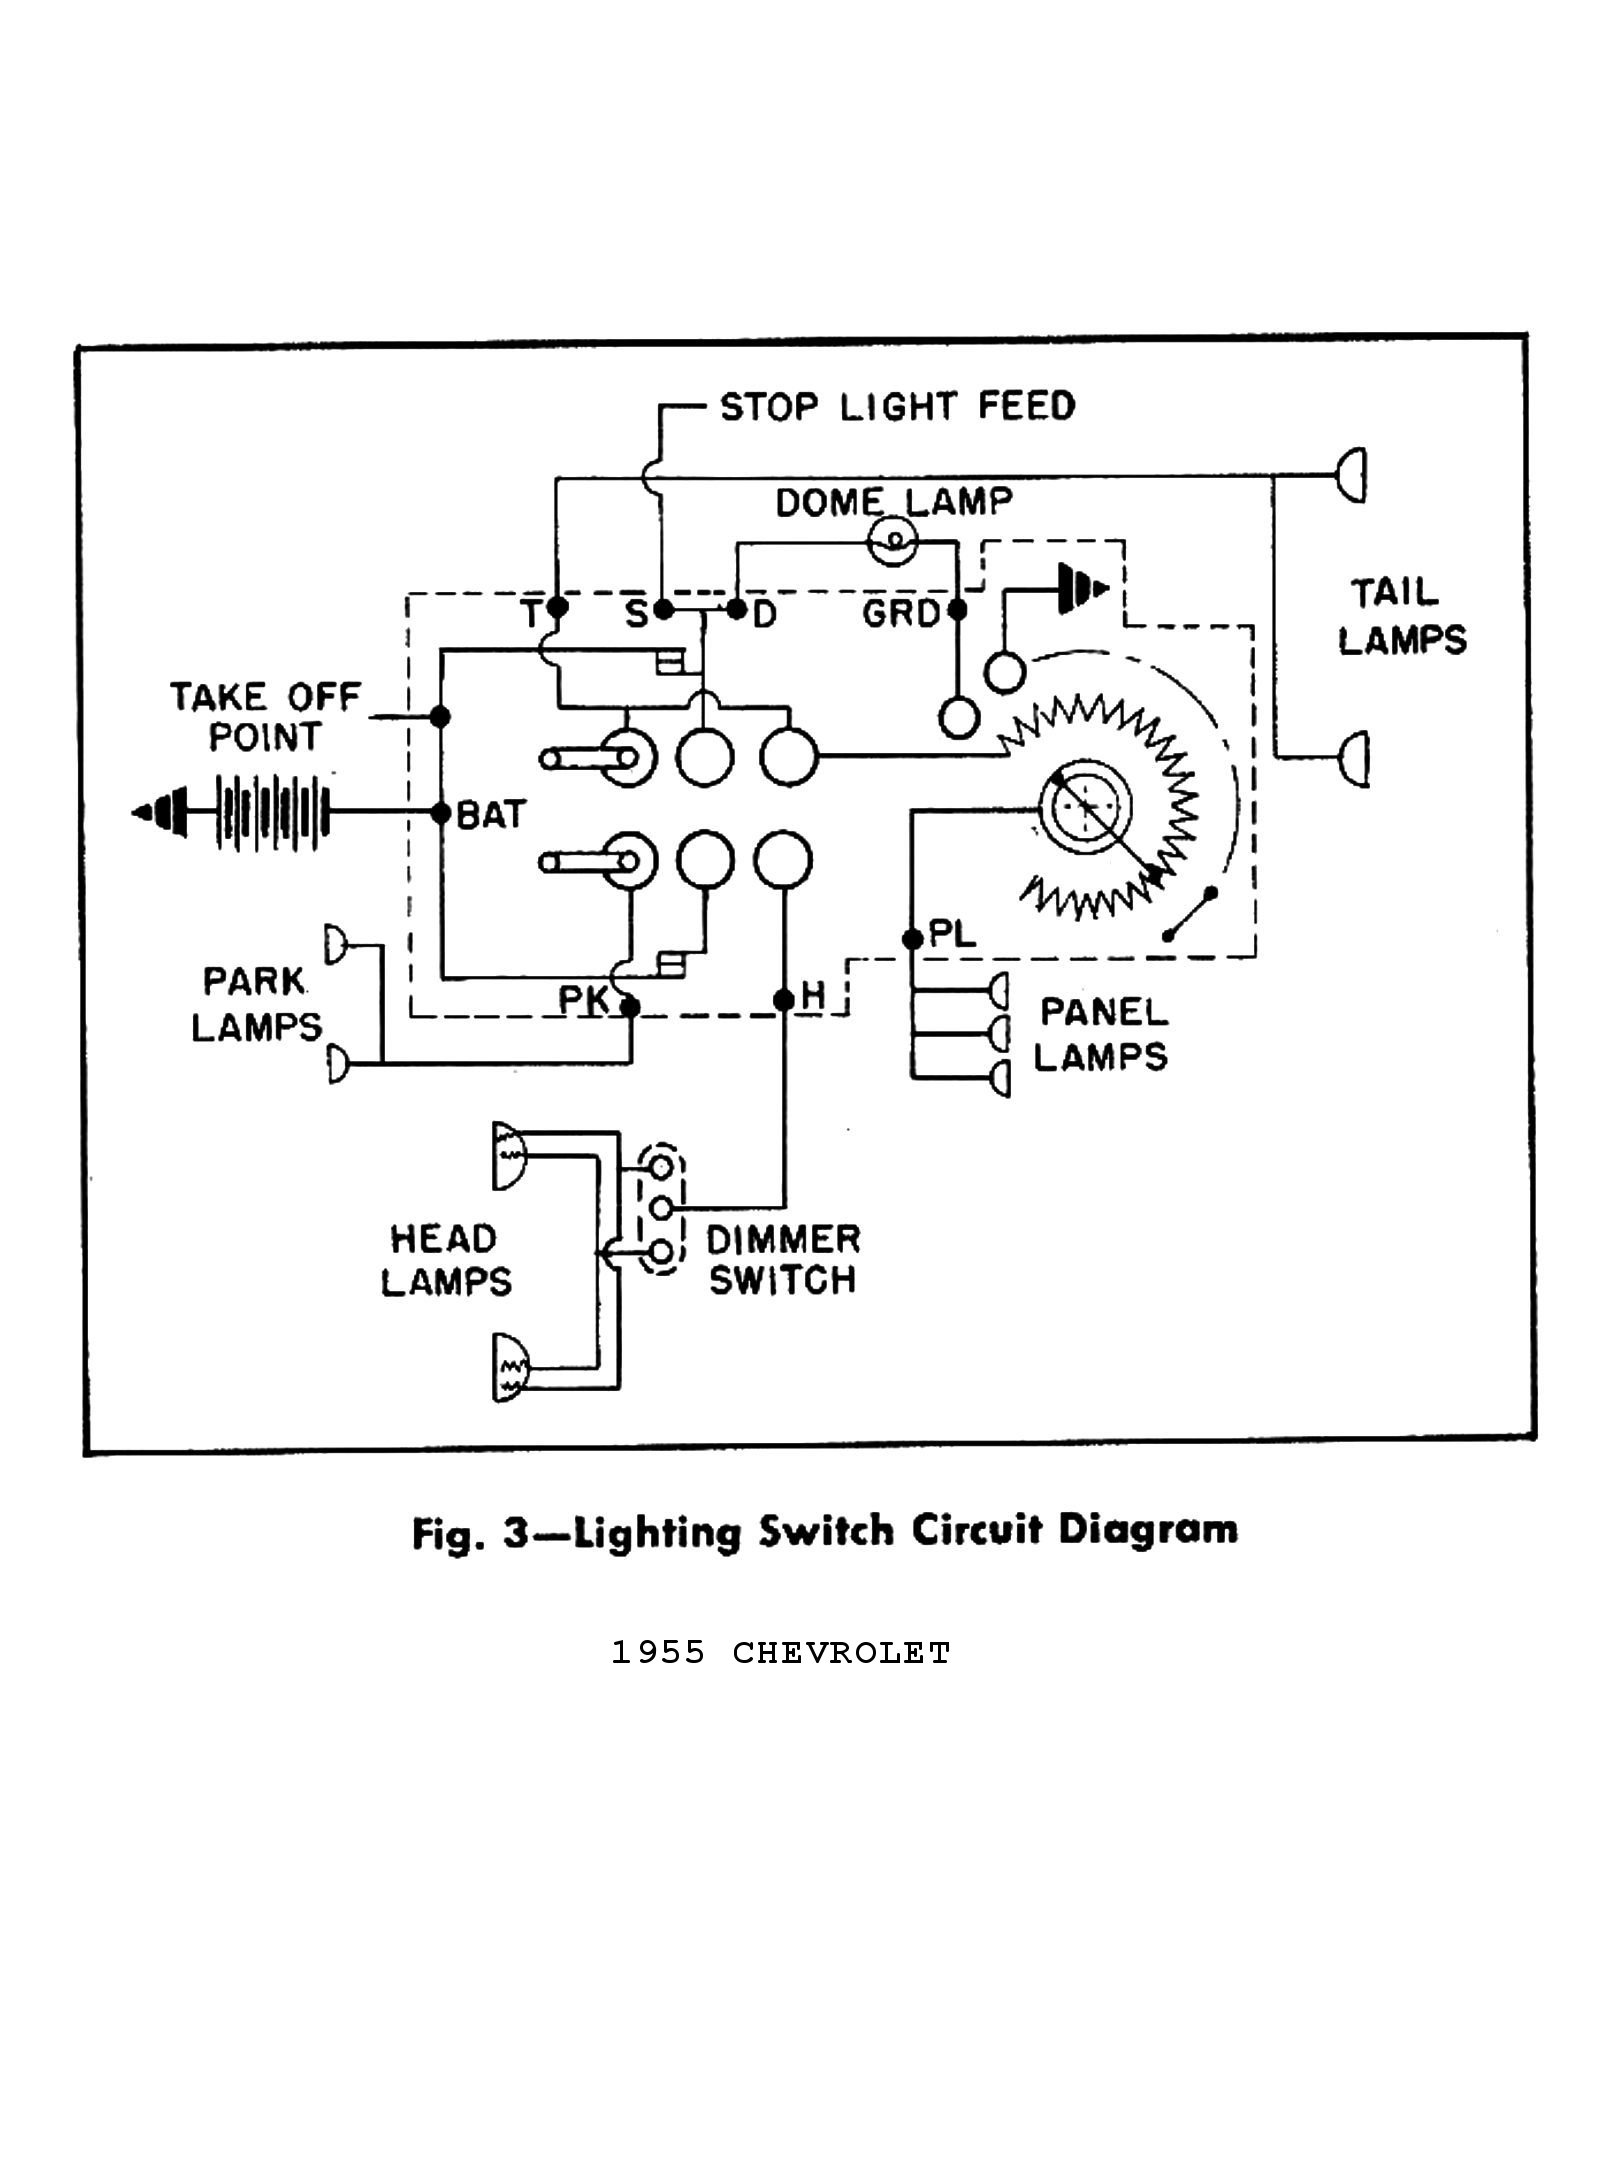 hight resolution of 1955 truck wiring diagrams 1955 electric windows seats 1955 lighting switch circuit